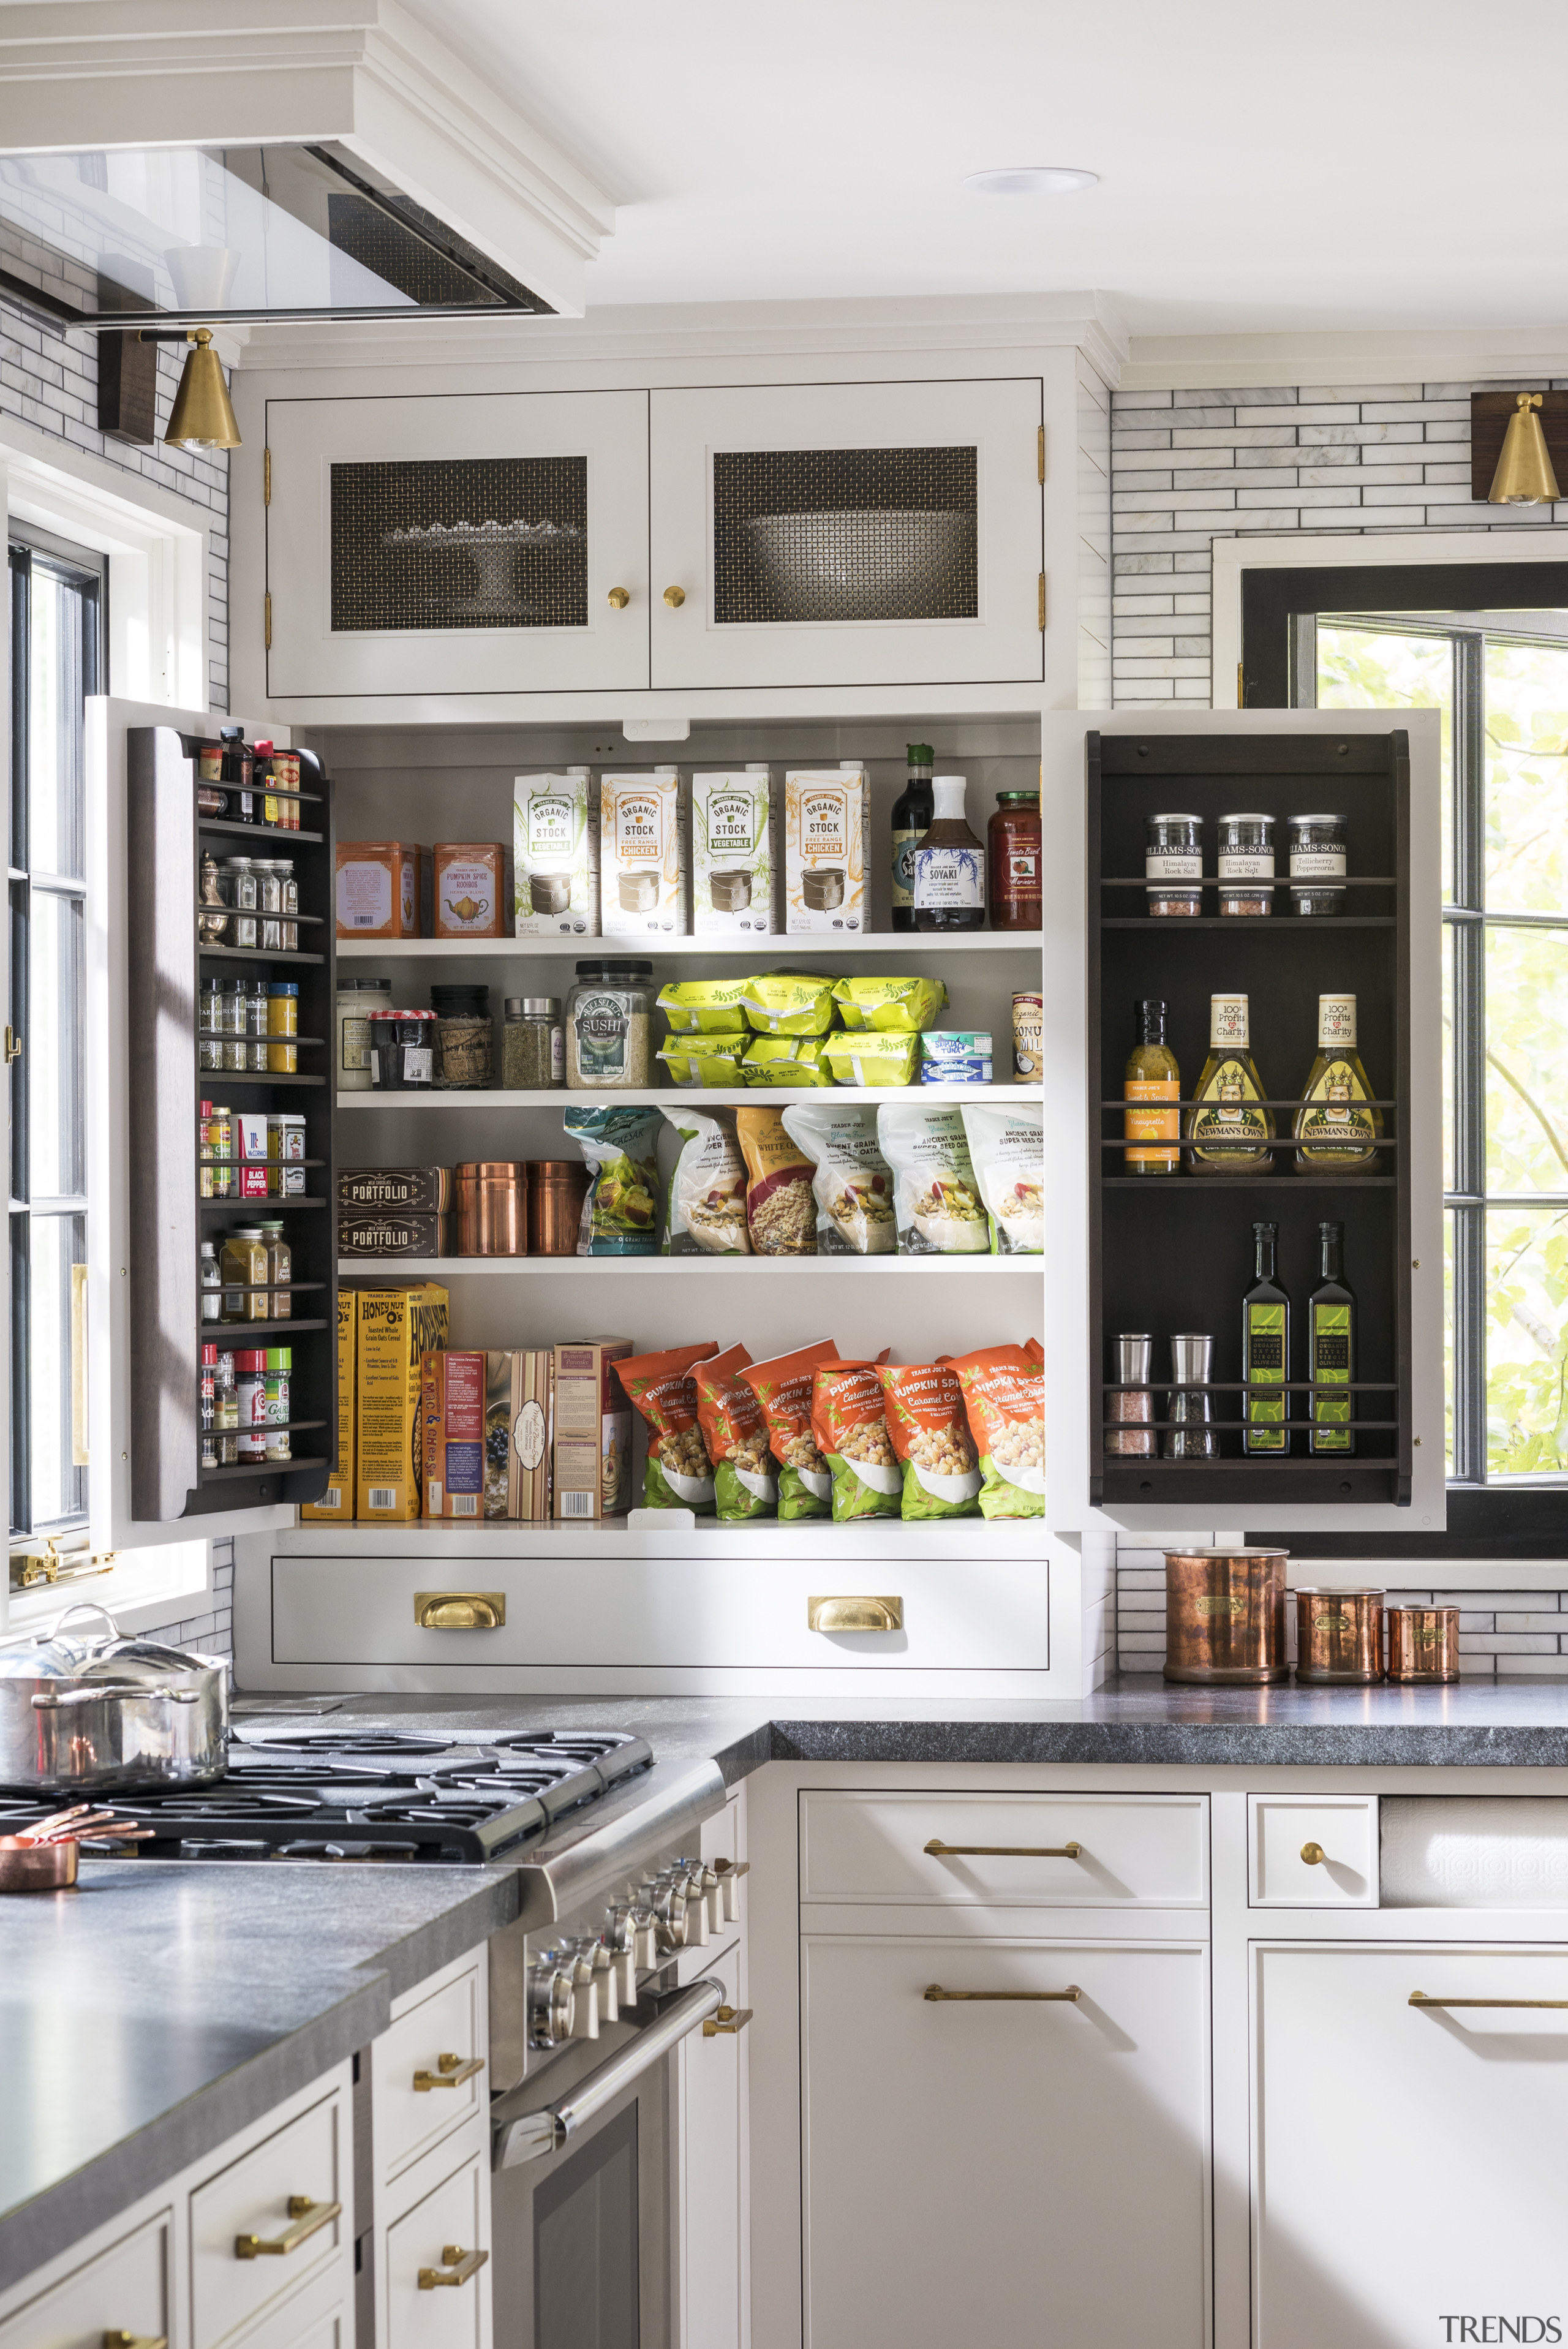 Benchtop-to-ceiling cabinetry extends into the corners of this cabinetry, storeage, countertop, floor, furniture, home, house, interior design, pantry, shelf, shelving, Studio Dearborn